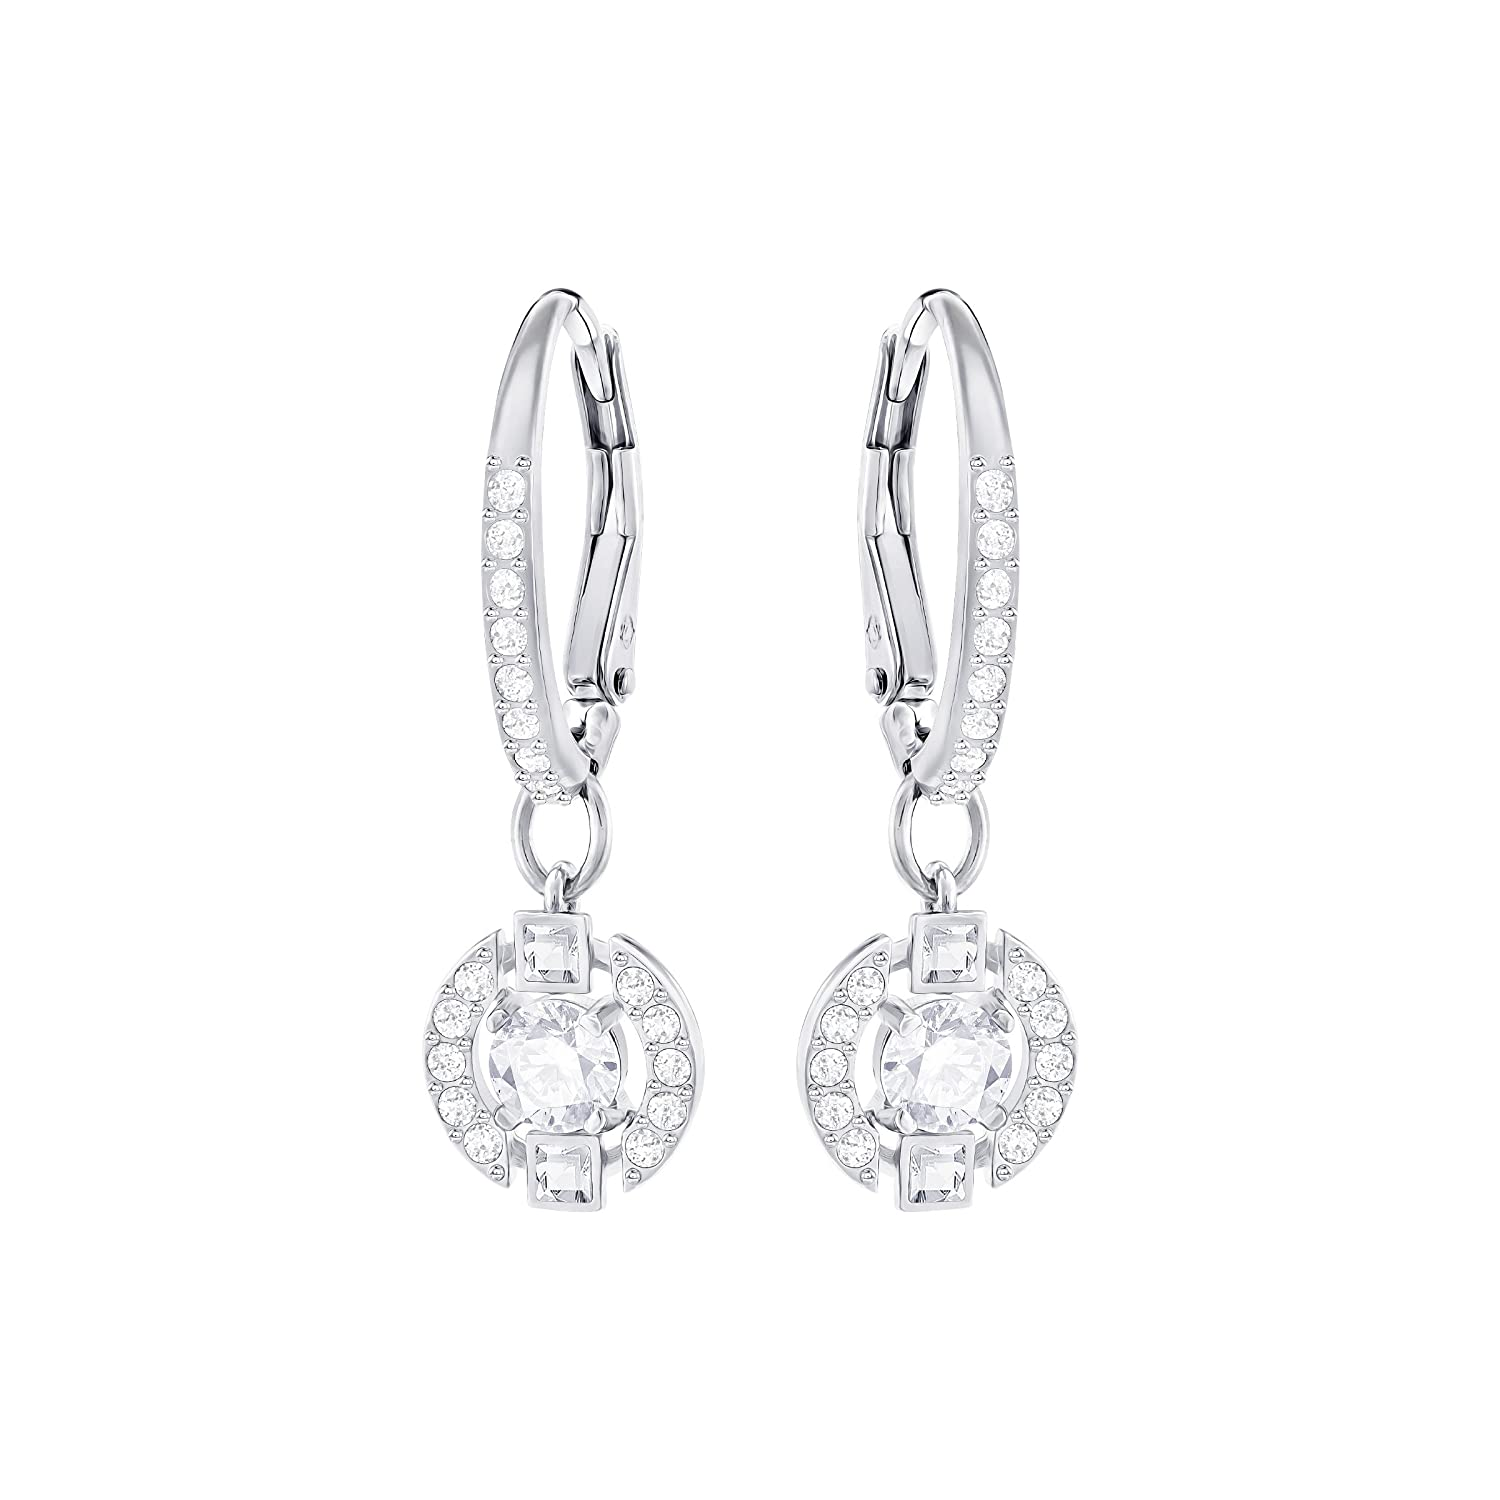 04039a56c Swarovski Women's Rhodium Plating and White Crystal Sparkling Dance Pierced  Earrings: Amazon.co.uk: Jewellery